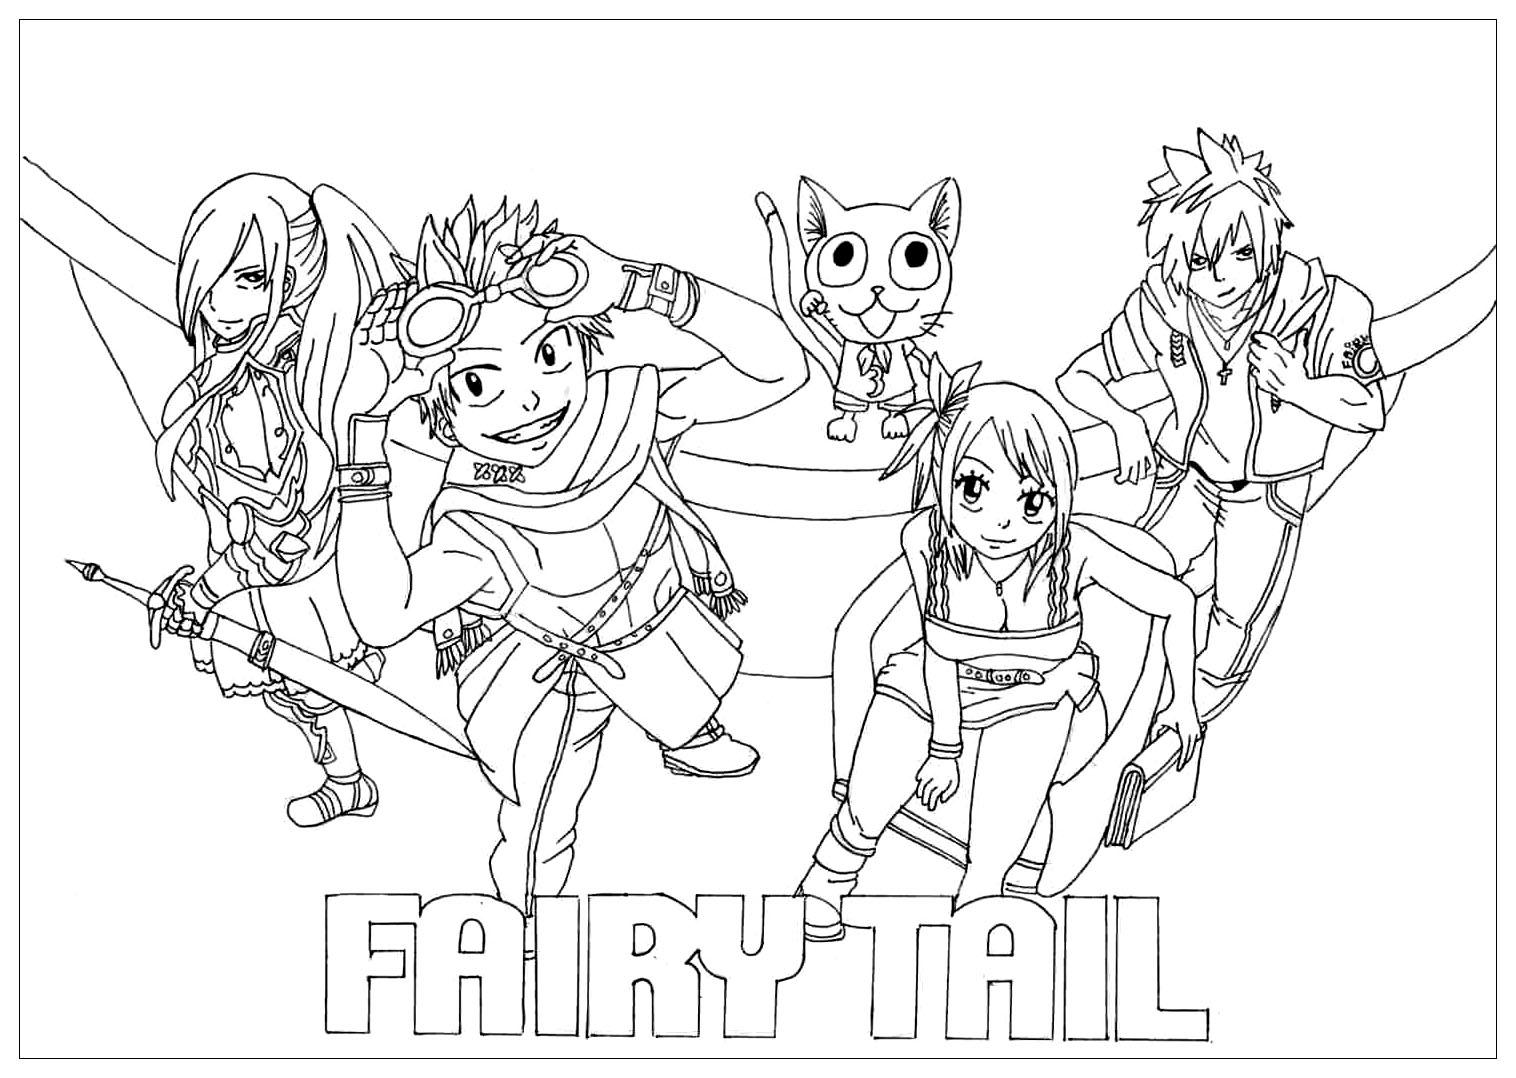 fairy tail coloring sheets fairy tail lineart by tobeyd on deviantart coloring sheets fairy tail